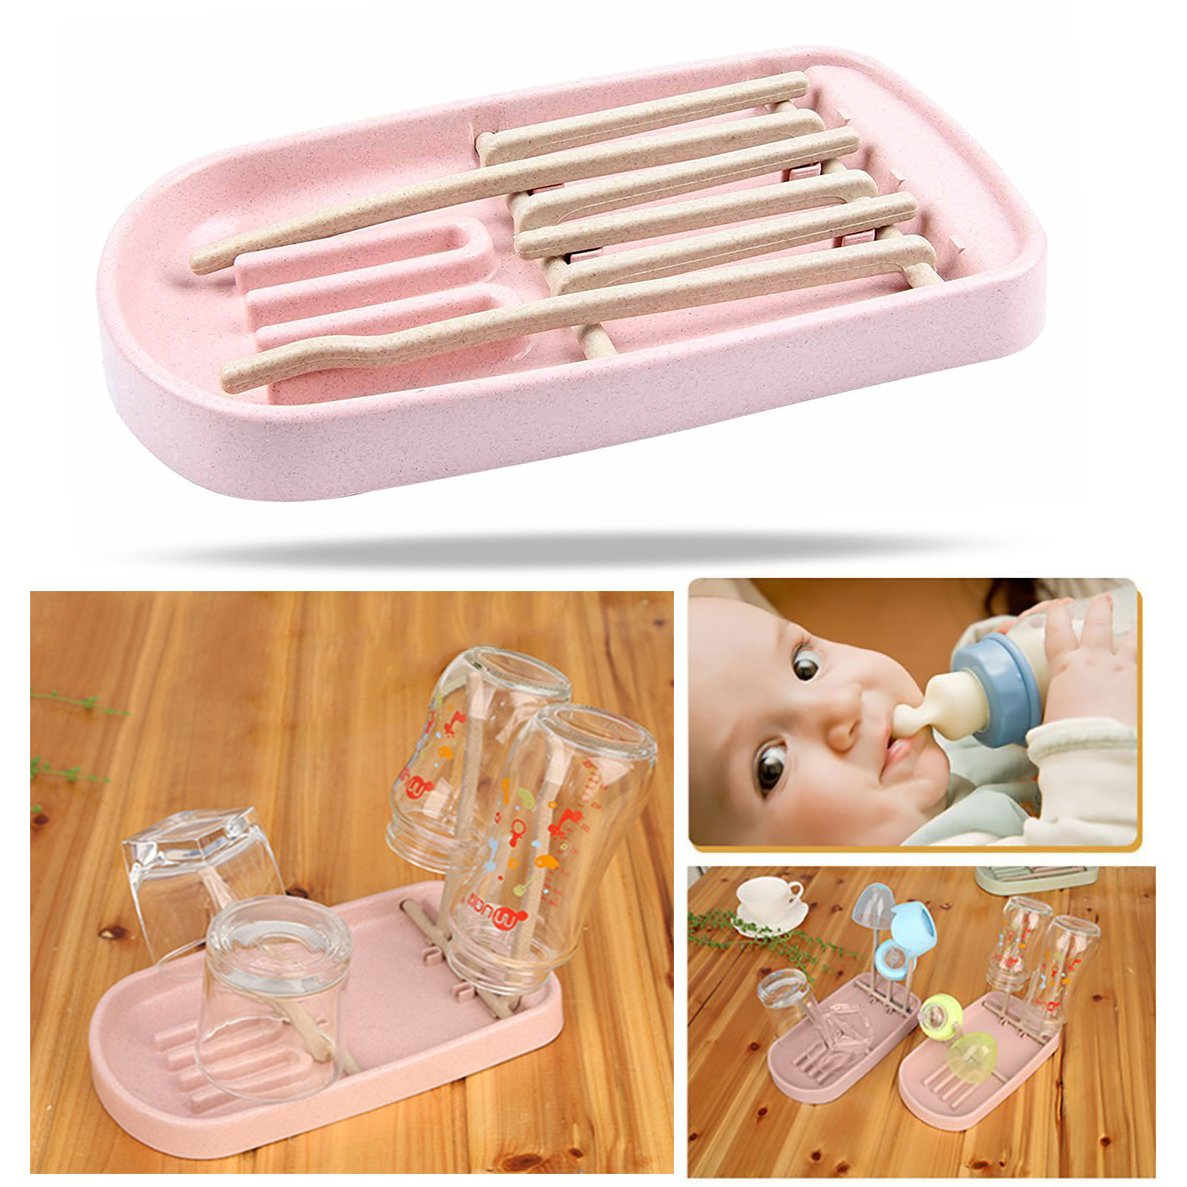 OFKPO Baby Bottle Drying Rack Dry Holder for Toddler Infant Sippy Cups Nipples Bottle Pacifier